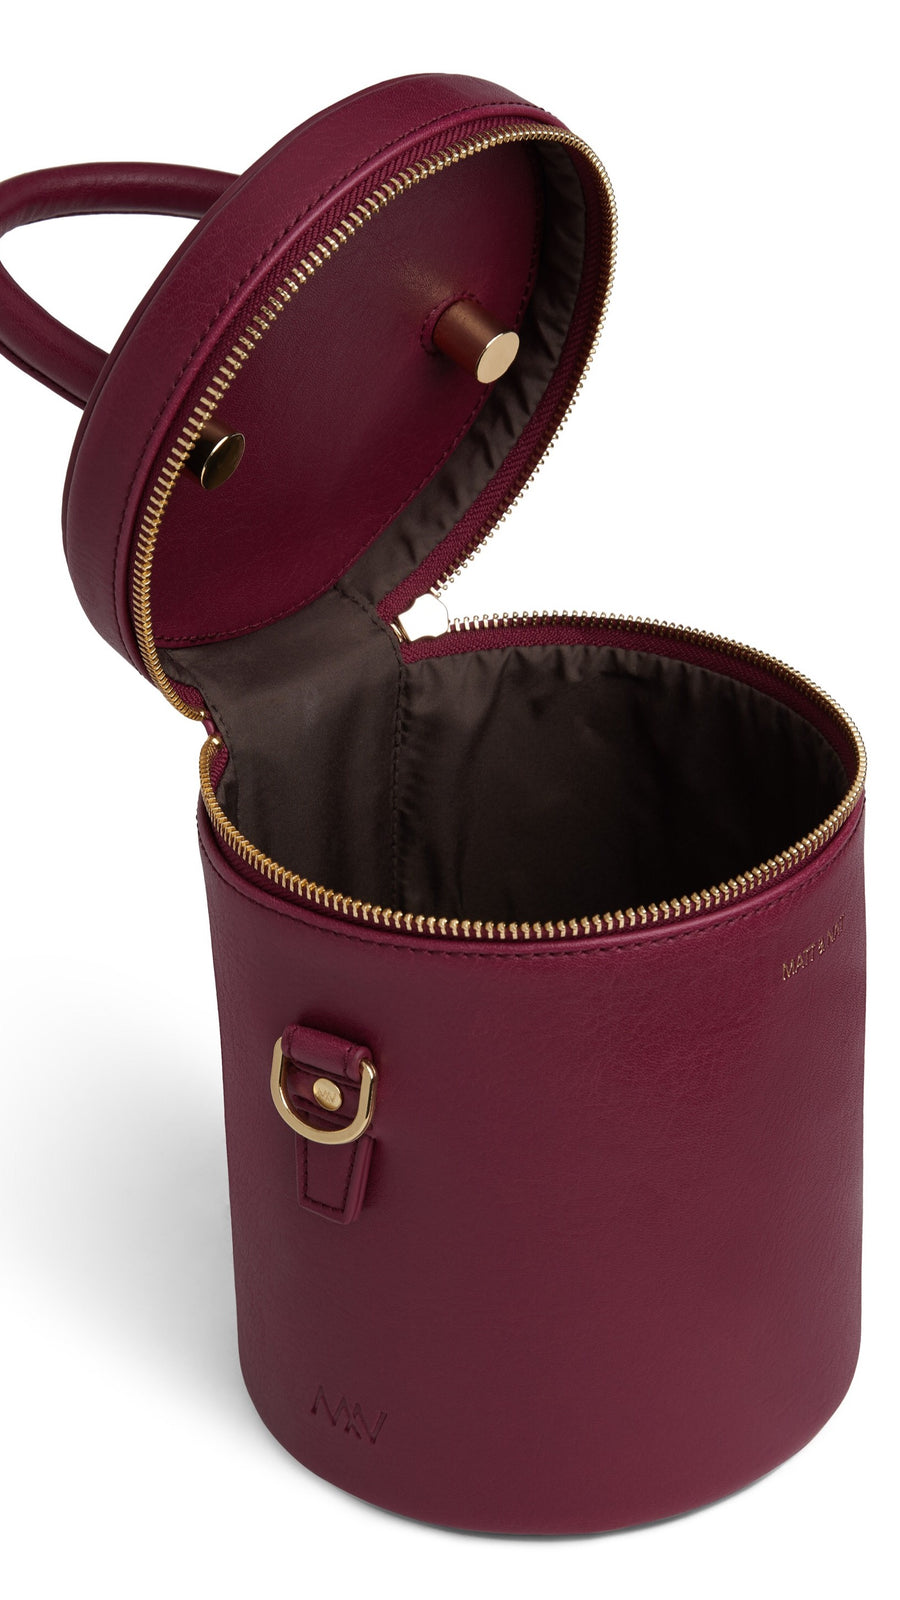 Matt & Nat Garnet DOV Crossbody Bag